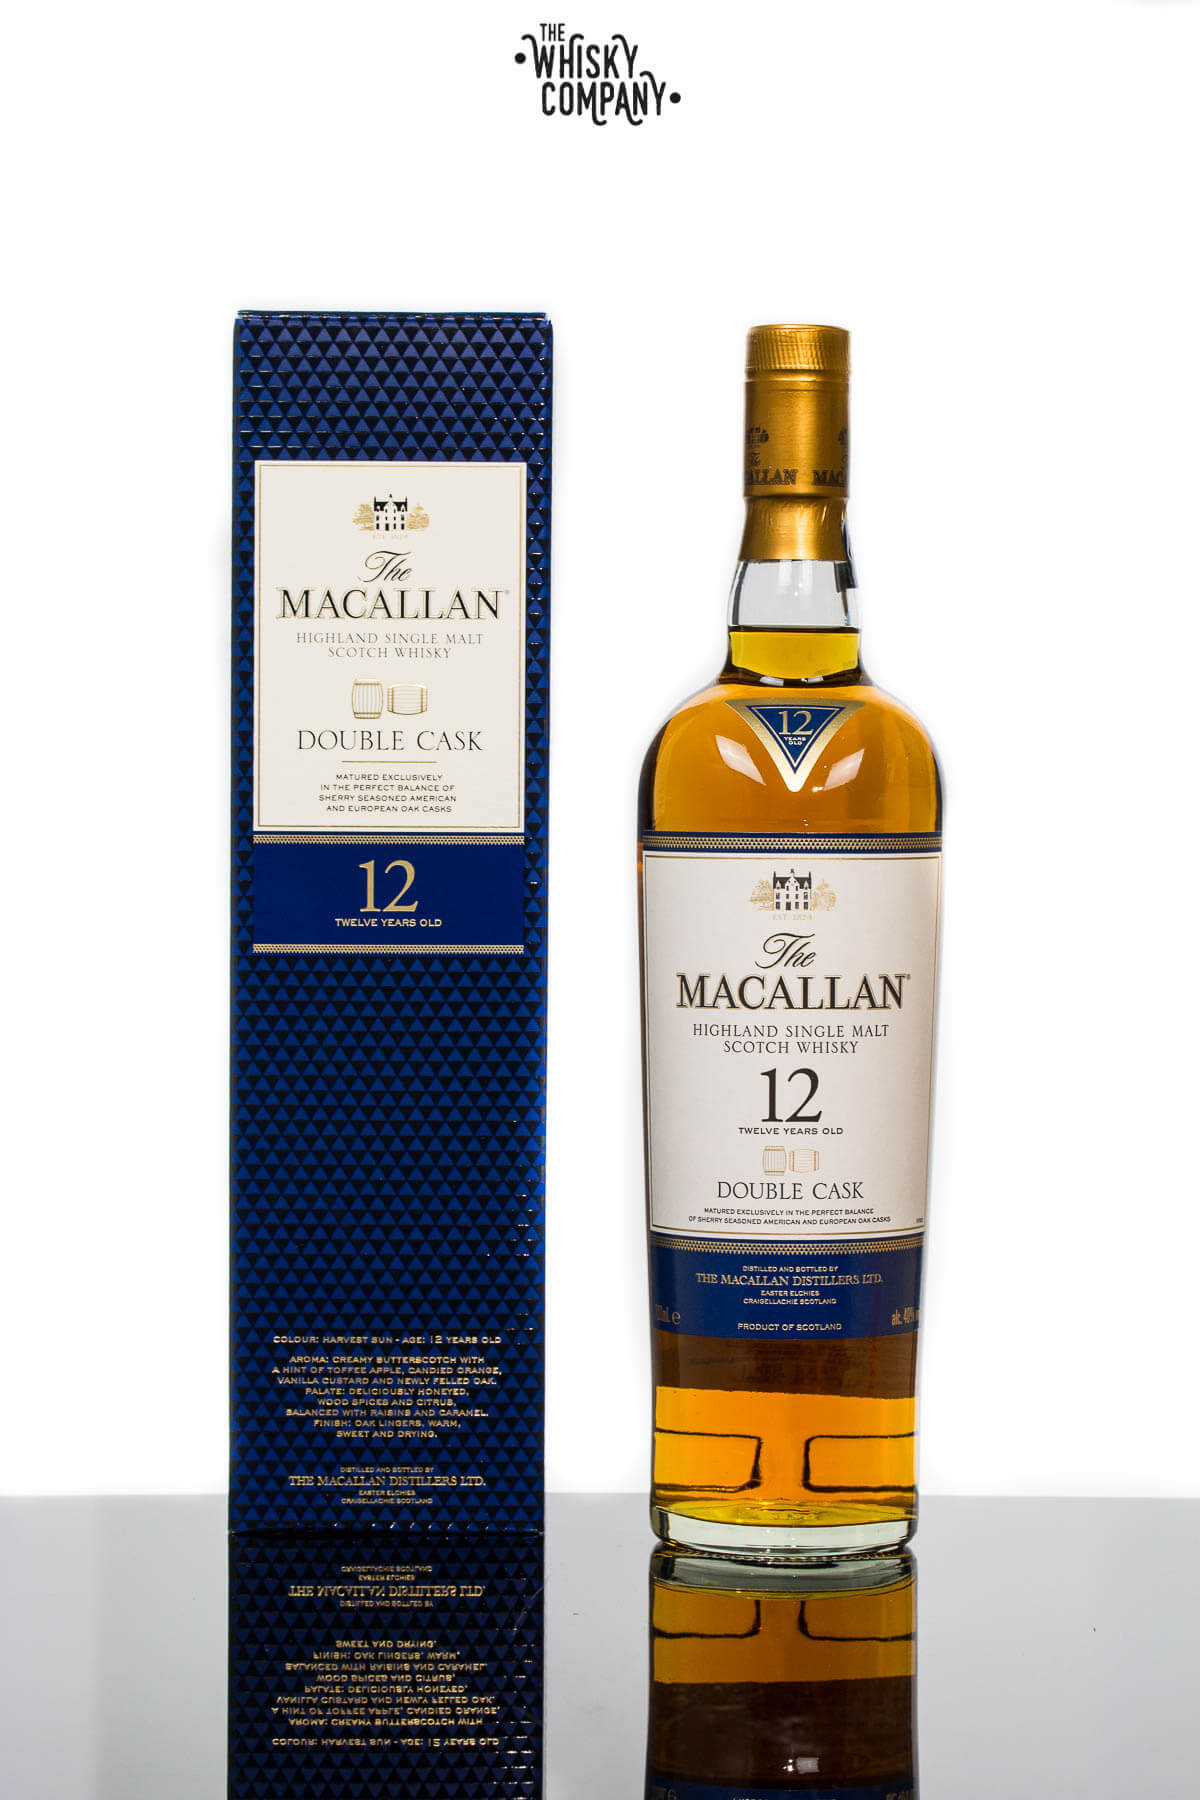 The Macallan Double Cask 12 Years Old Single Malt Scotch Whisky (700ml)